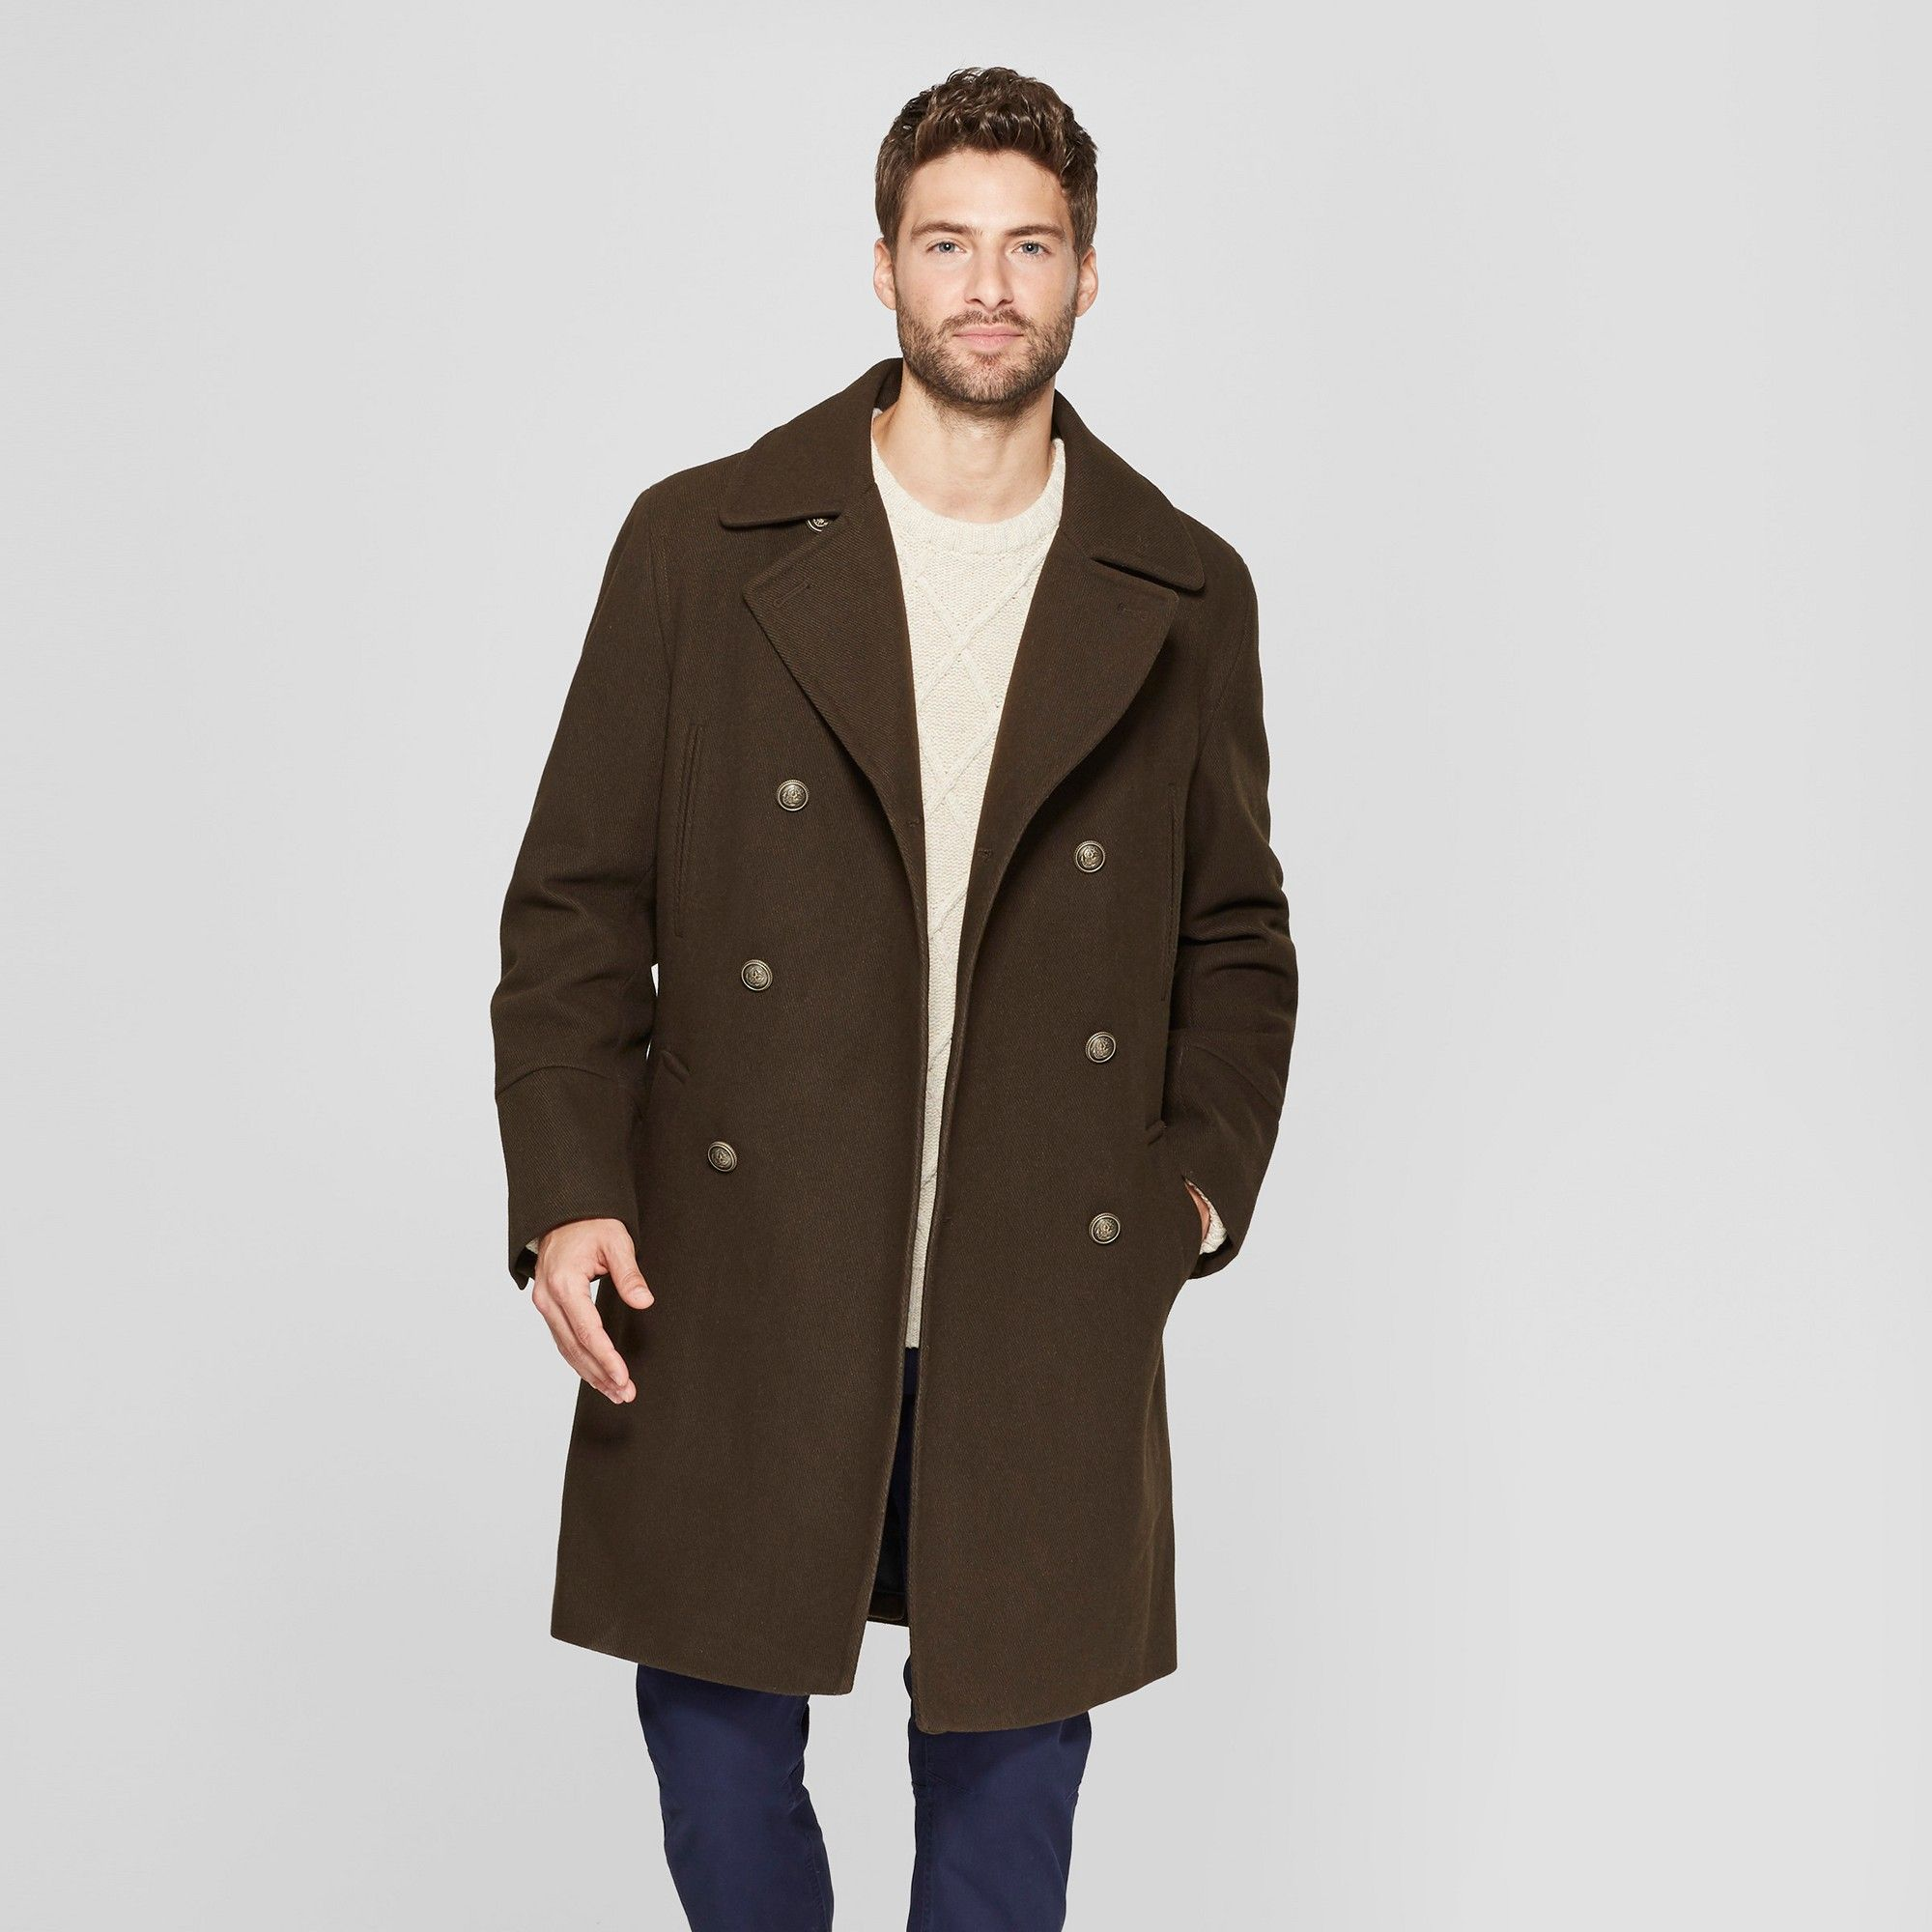 Yusky Mens Button Oversized Regular Tailored Fit Trench Coat Outwear